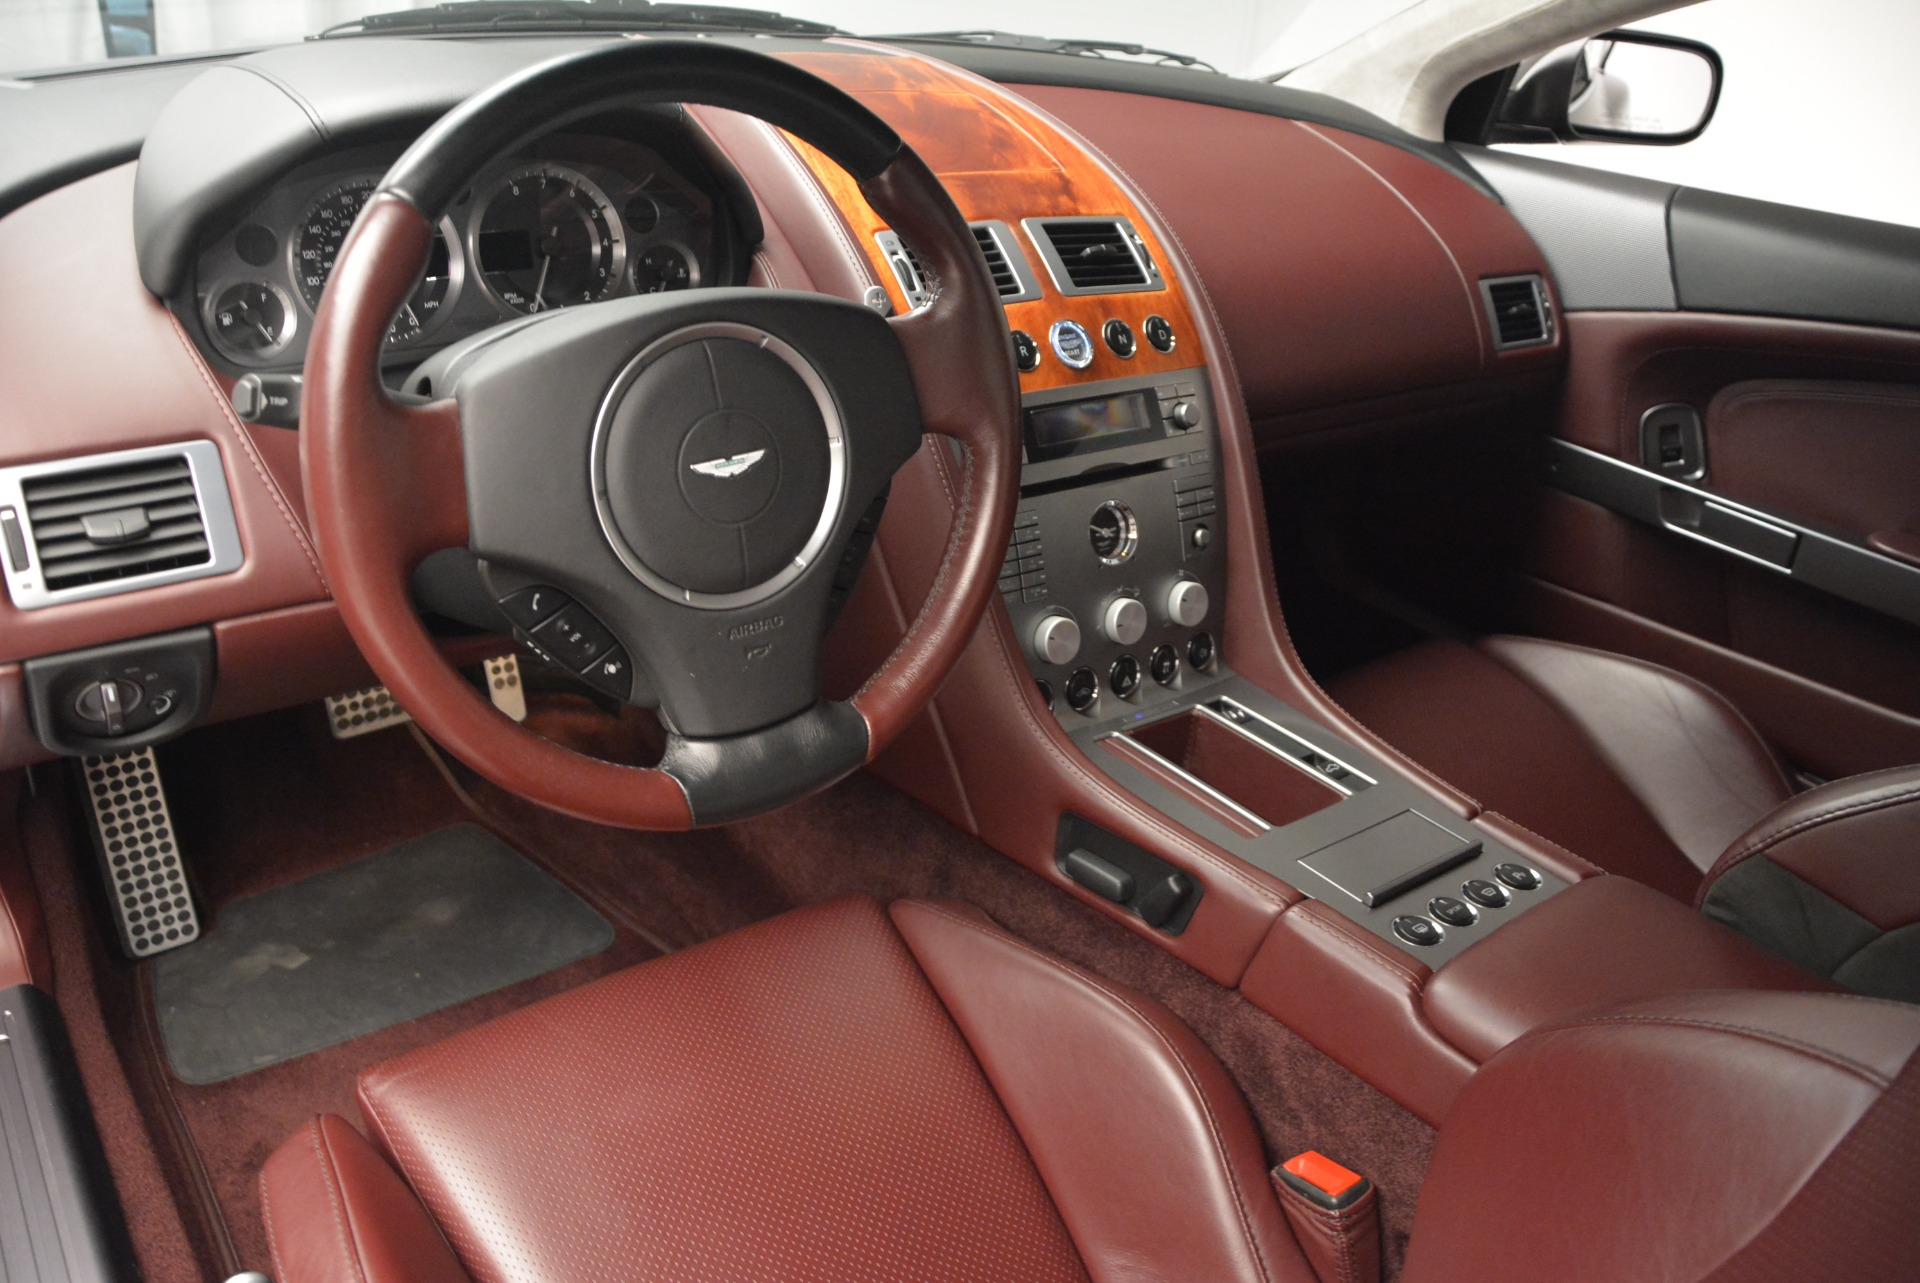 Used 2006 Aston Martin DB9 Coupe For Sale In Greenwich, CT 2832_p14